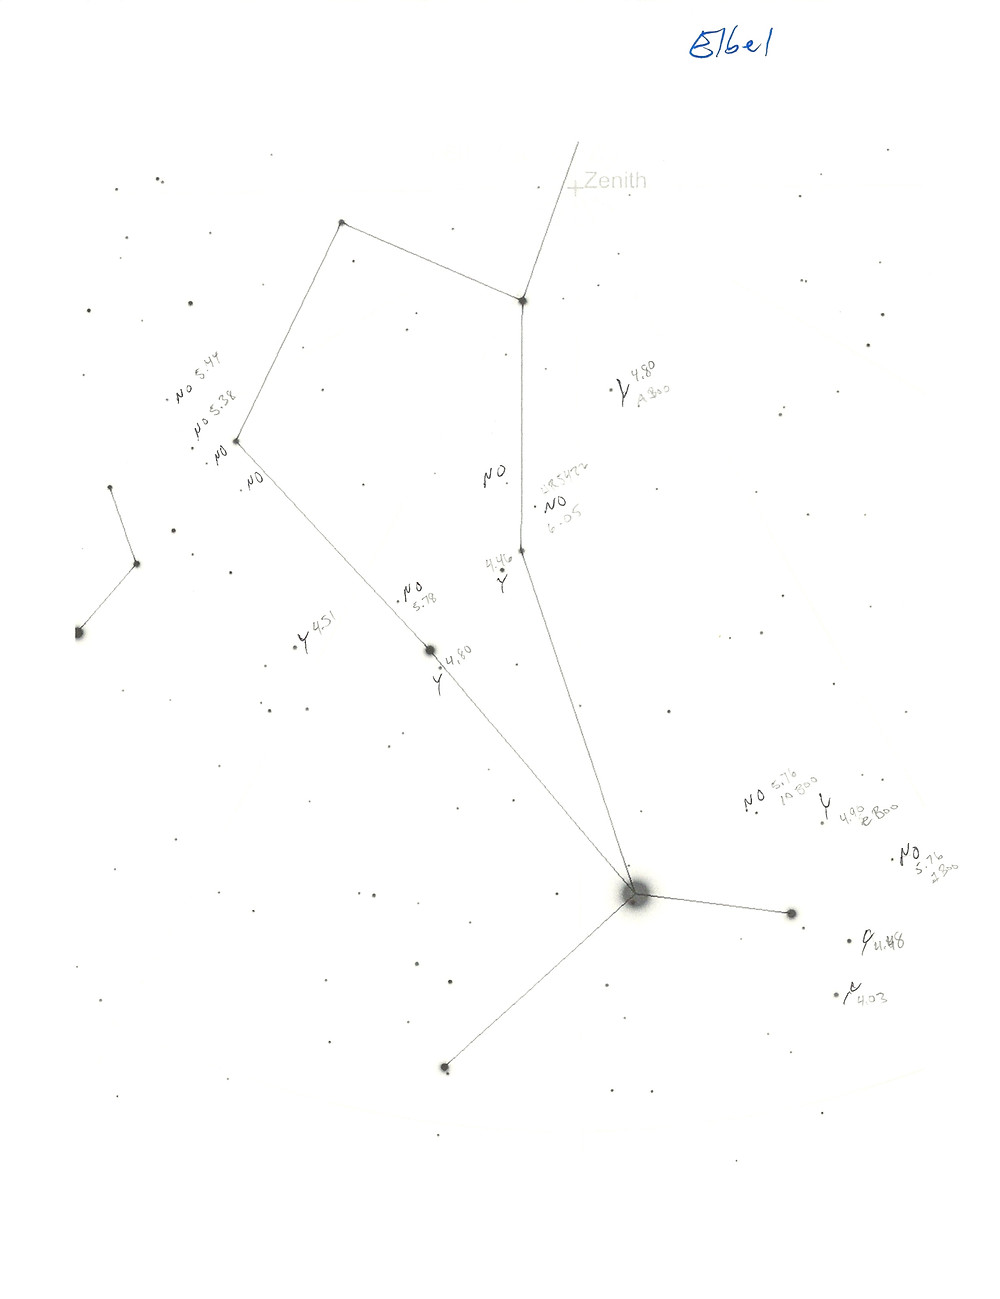 Star chart of Bootes